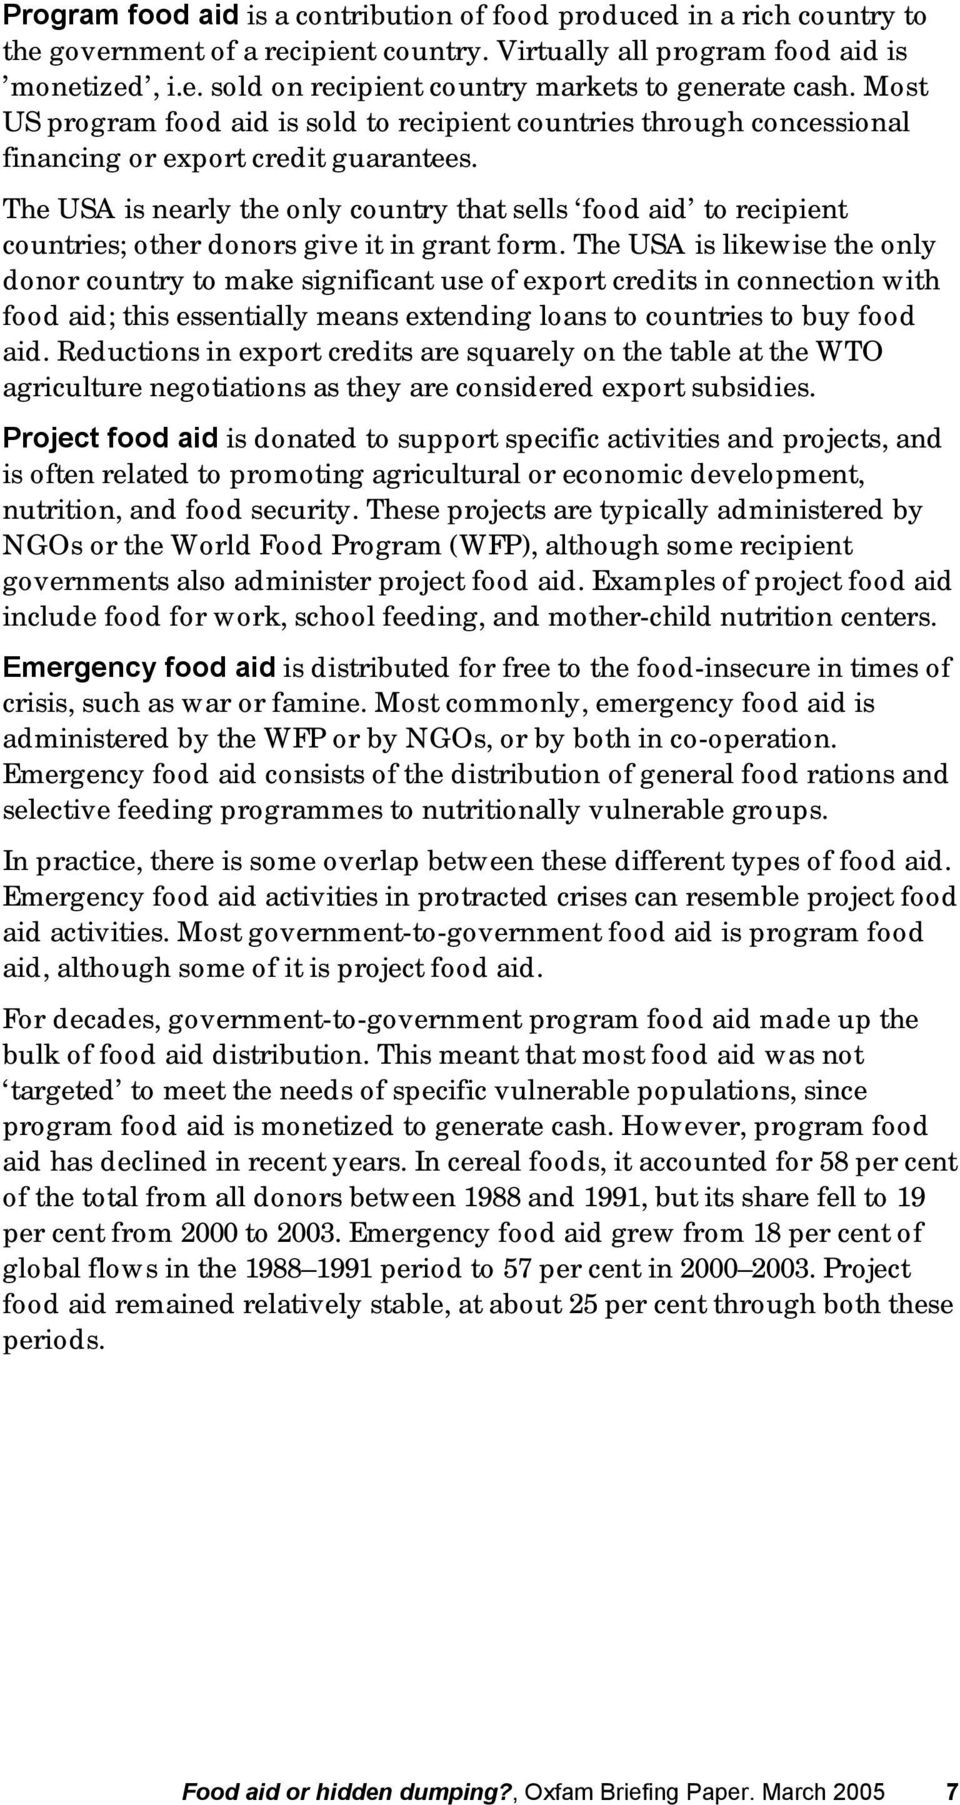 The USA is nearly the only country that sells food aid to recipient countries; other donors give it in grant form.